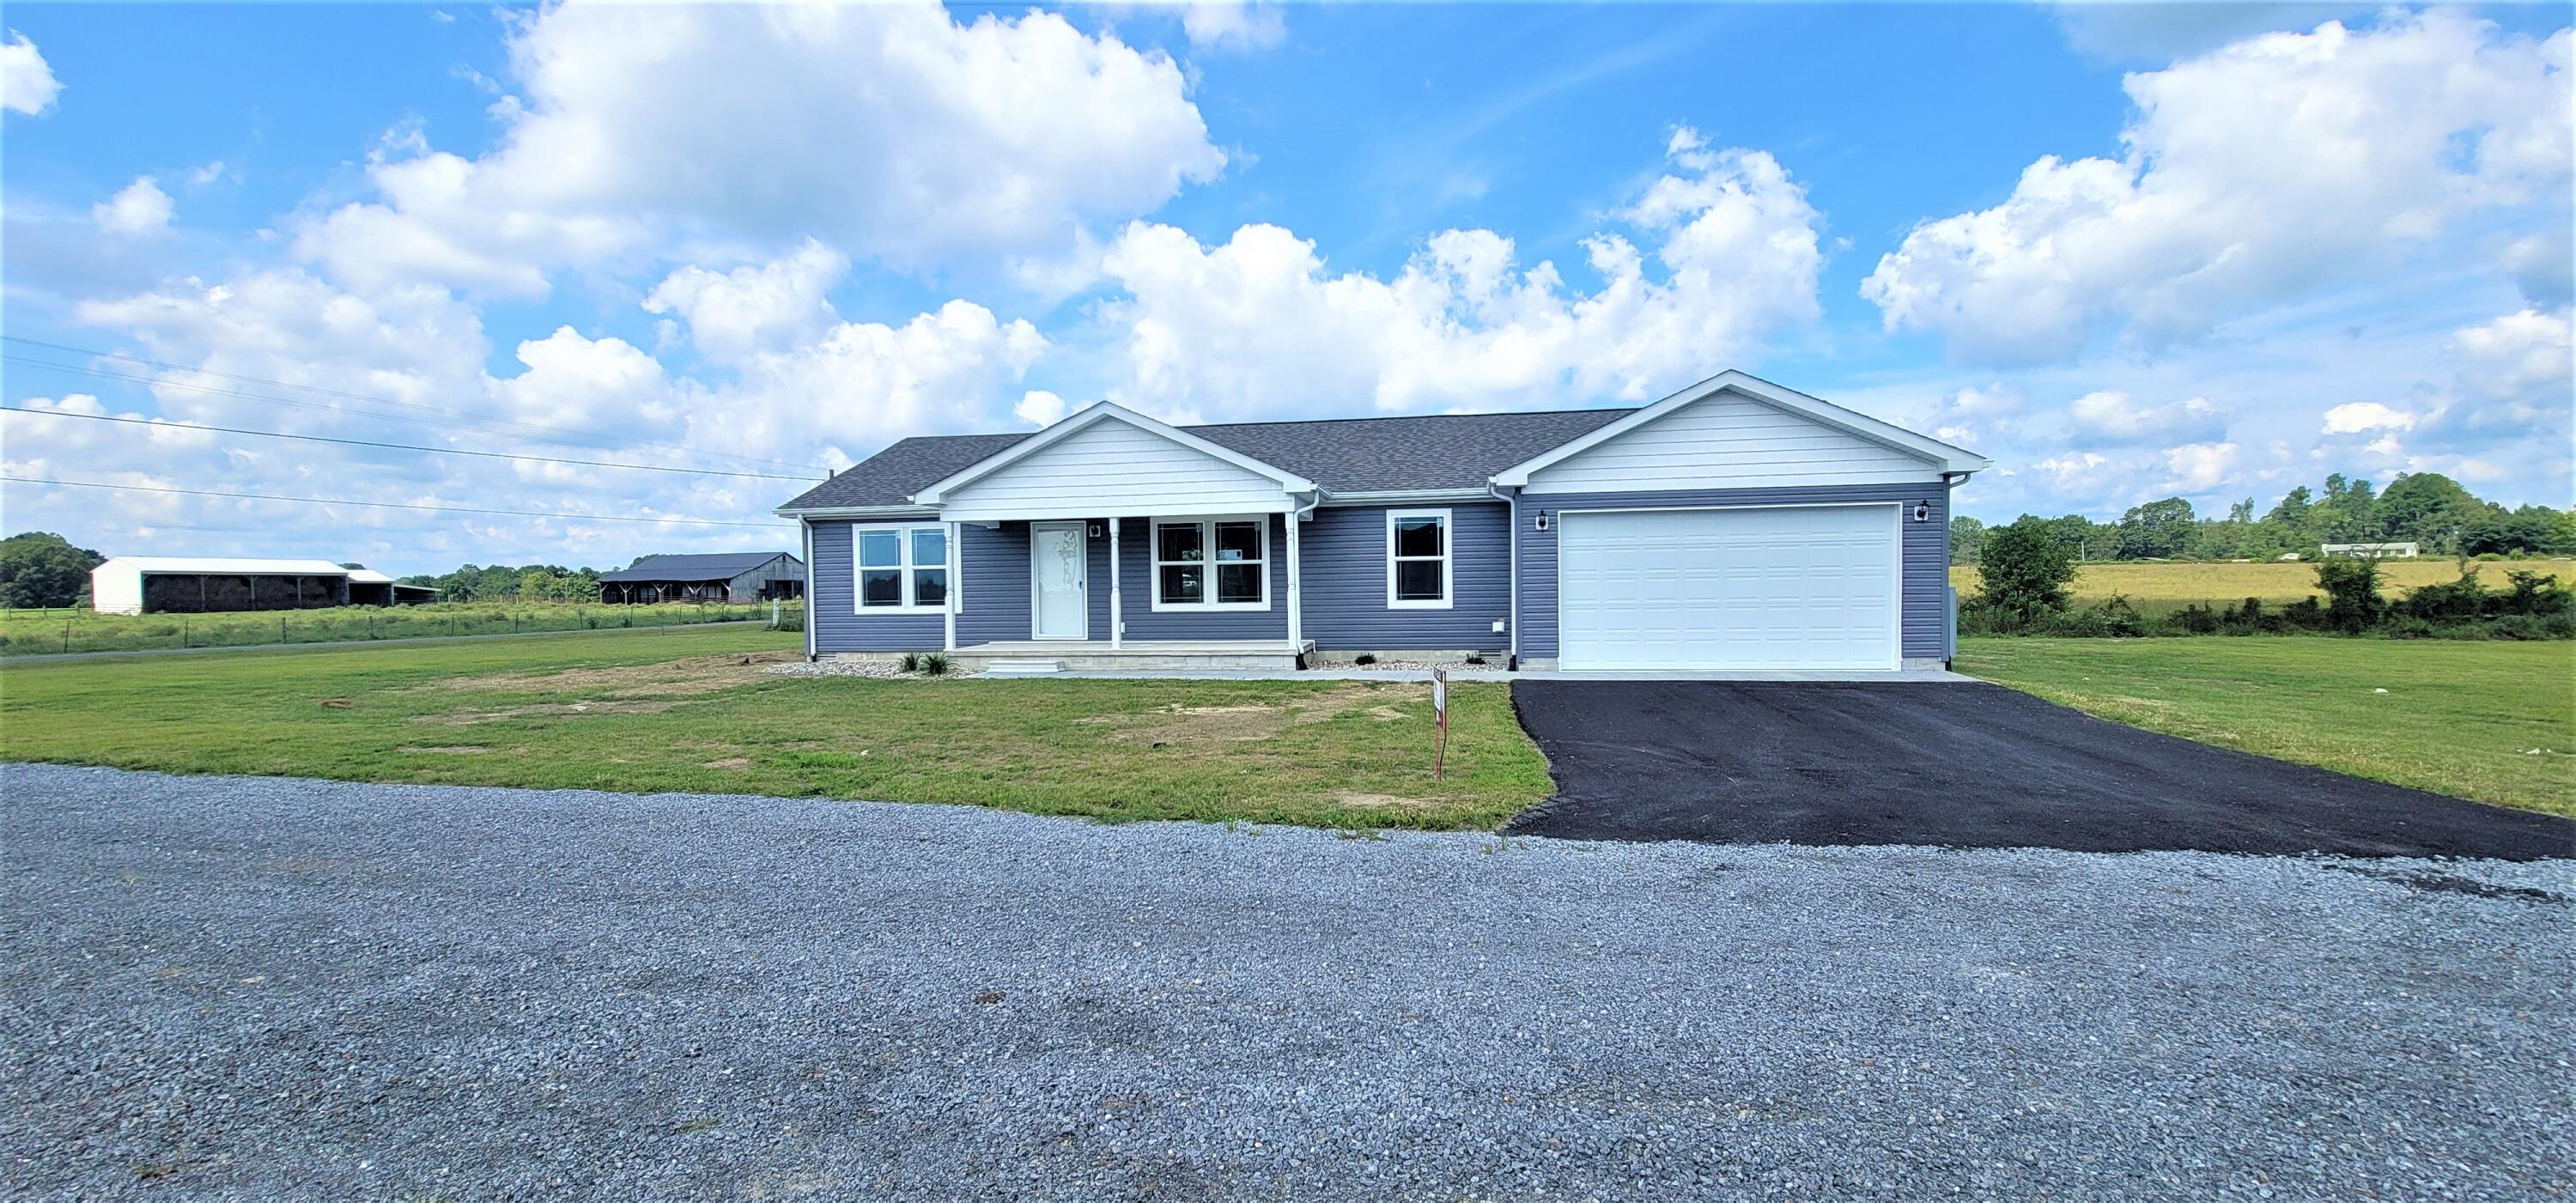 1 Village Drive, Russell Springs, KY 42642